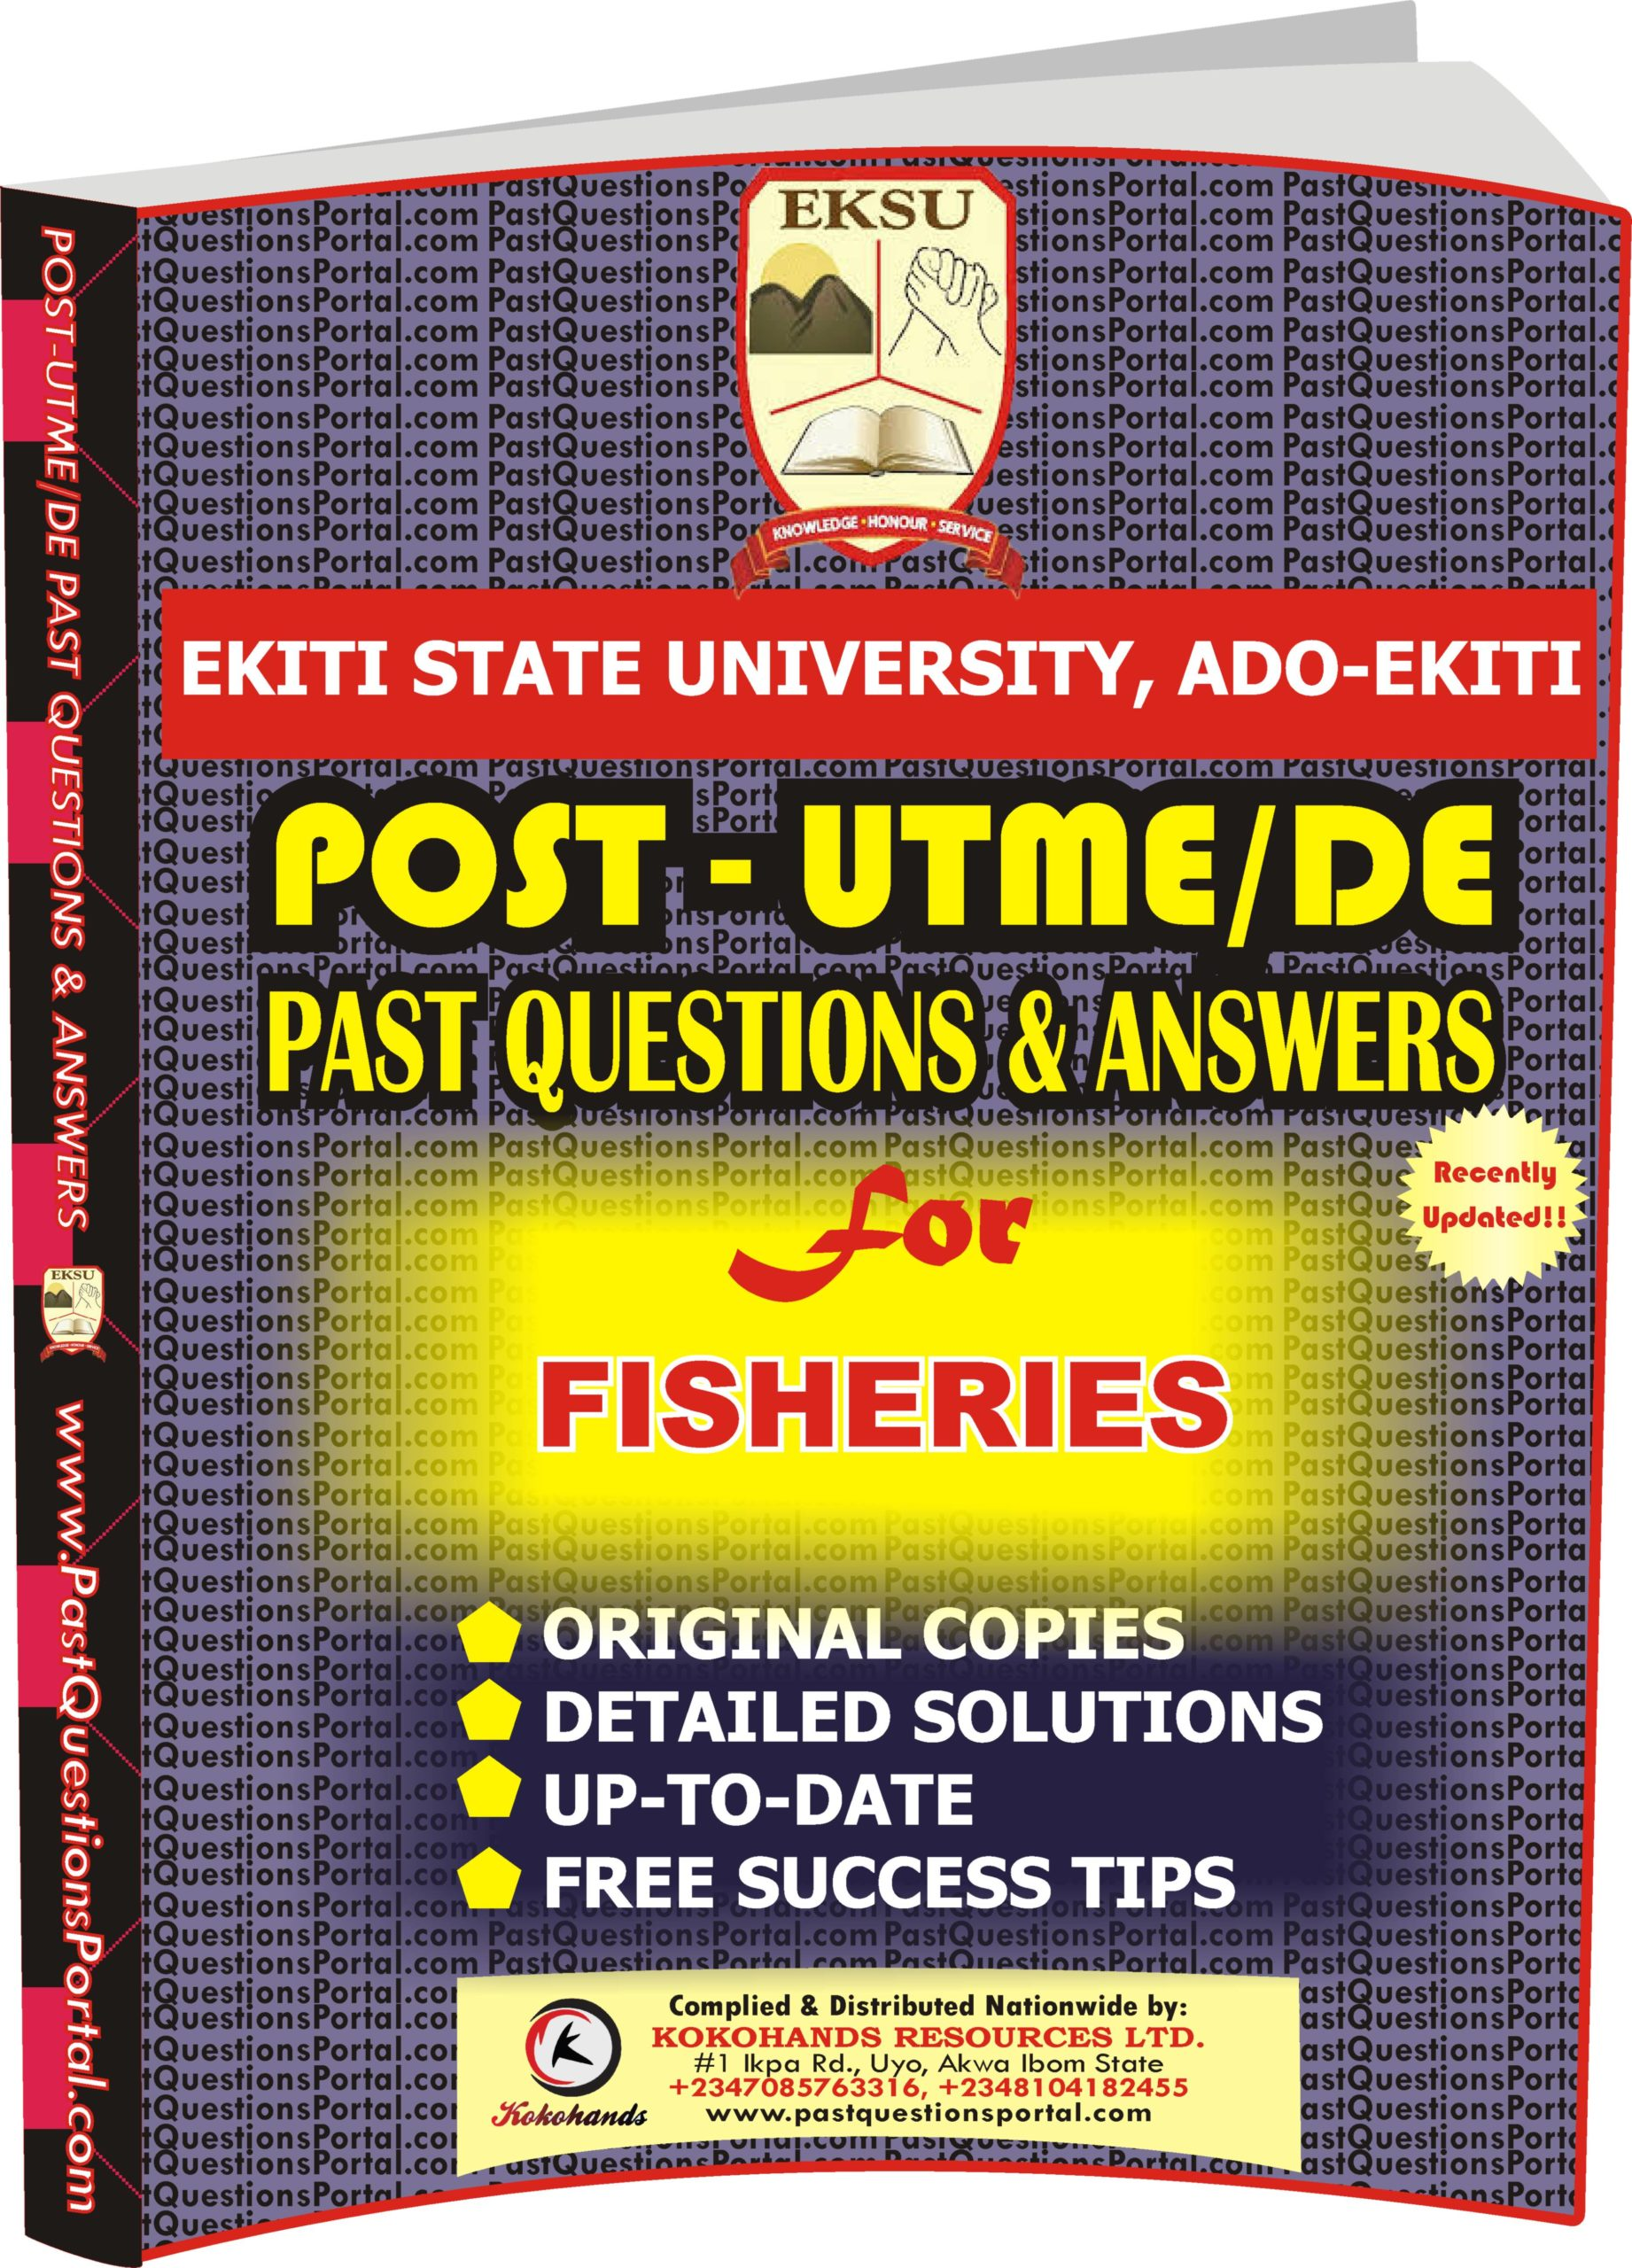 EKSU Post UTME Past Questions for FISHERIES